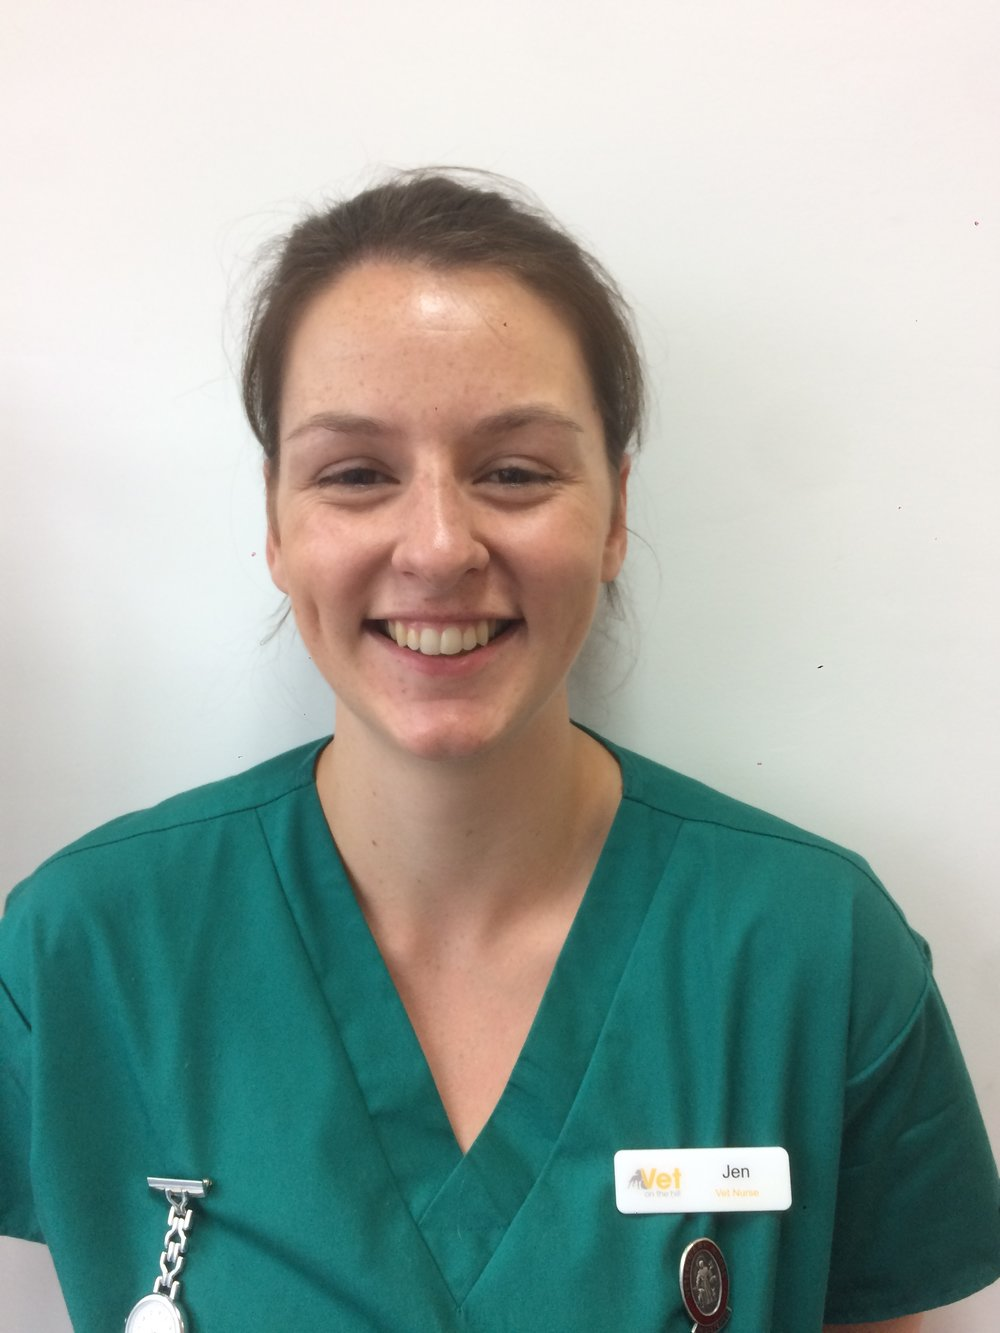 JEN POLDEN  Veterinary Nurse RVN Jen has always wanted to be a veterinary nurse and was able to study at Plumpton College to obtain her foundation degree in veterinary nursing, qualifying in 2016. She has a strong passion for inpatient care and especially loves feline nursing.